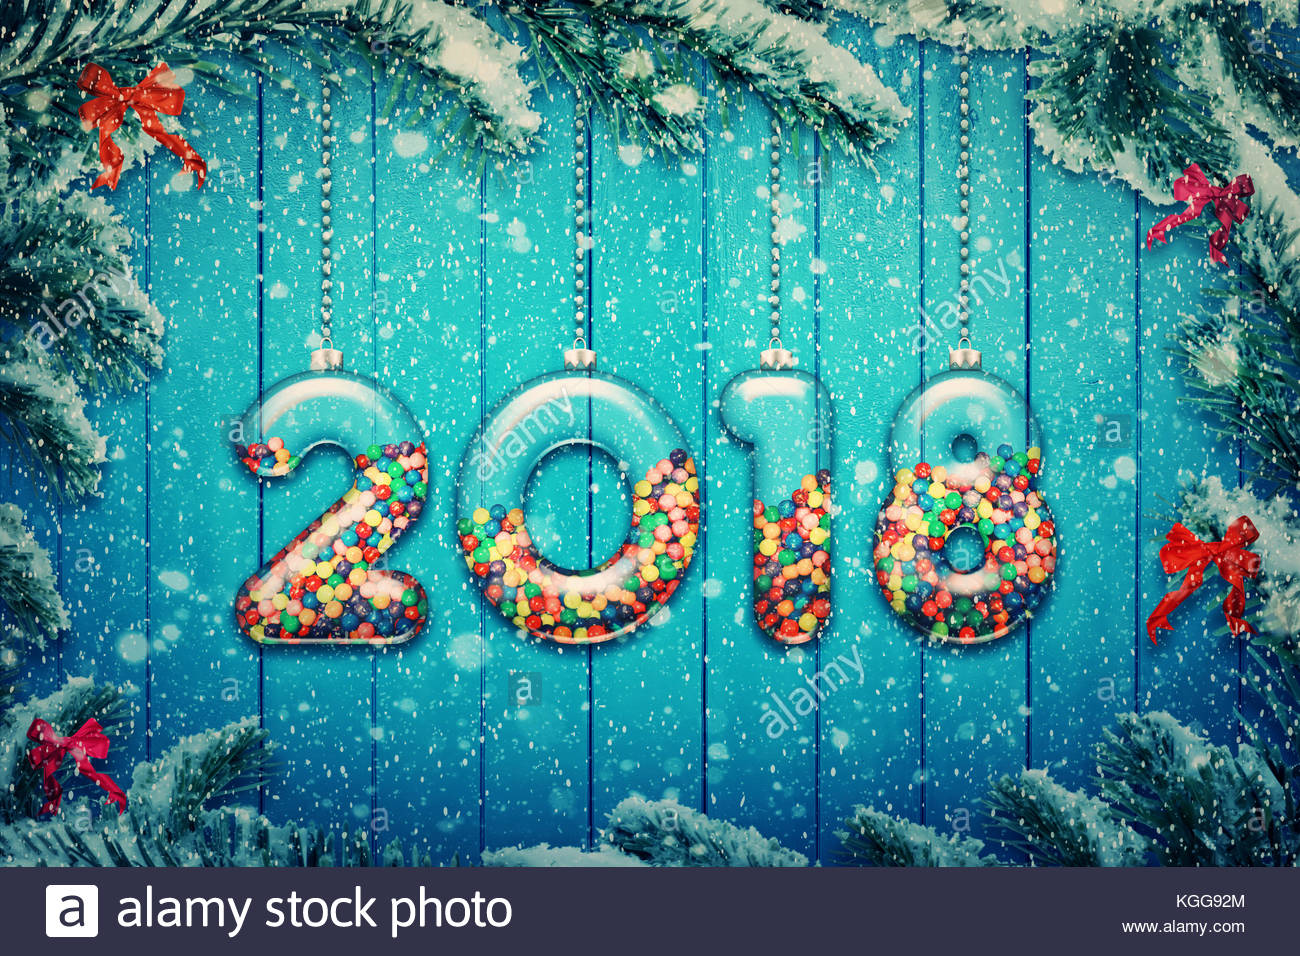 happy new year 2018 background set of transparent glass with multicolored candy and sweets hang